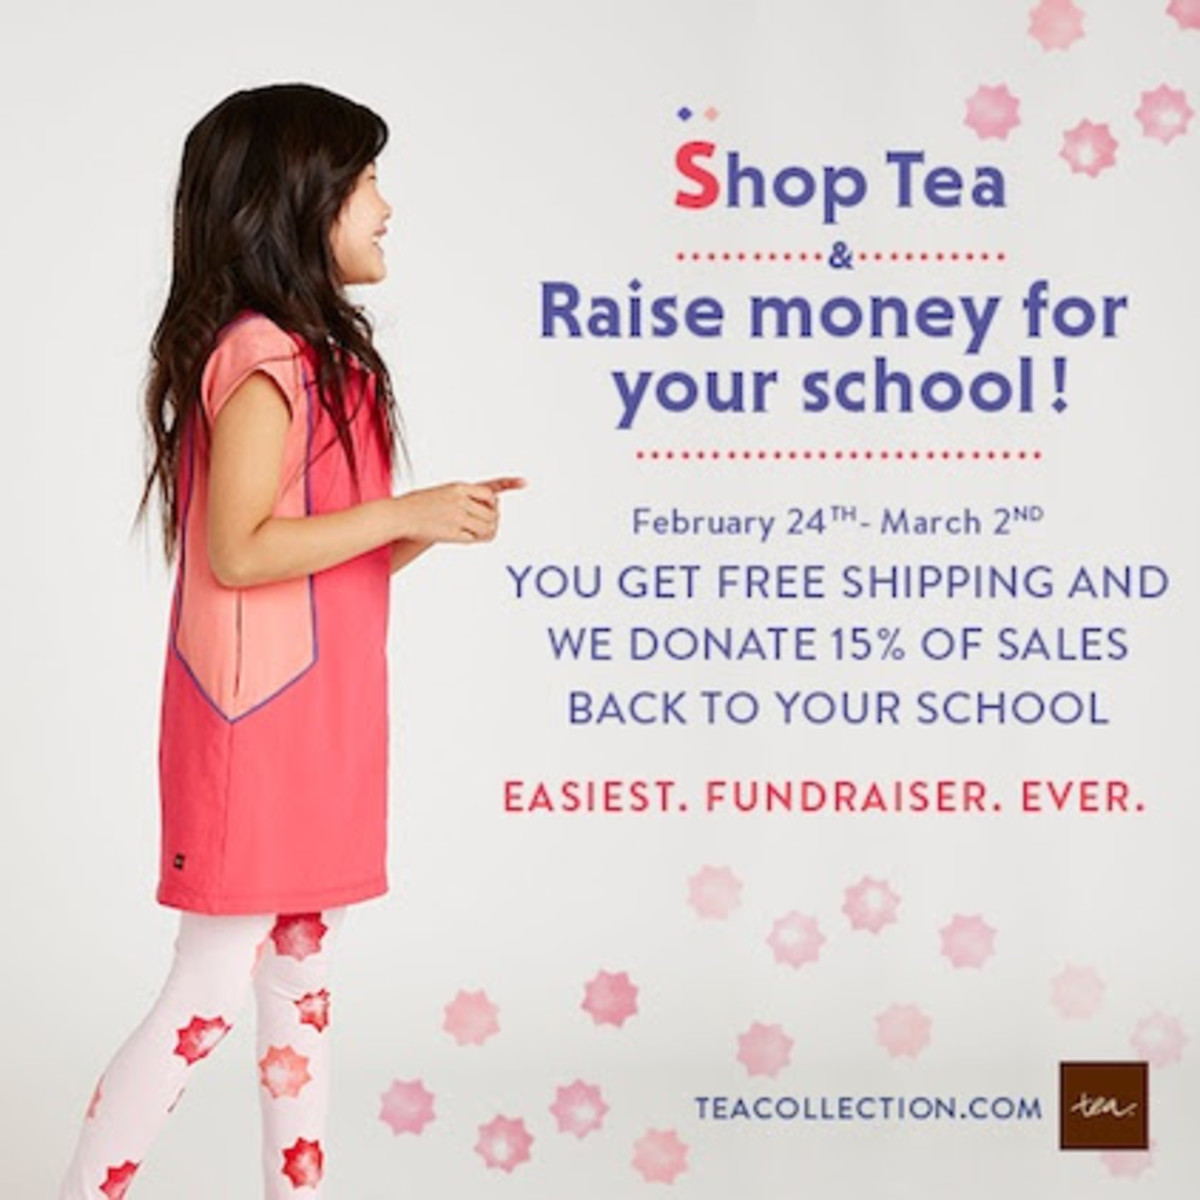 tea collection shop for your school